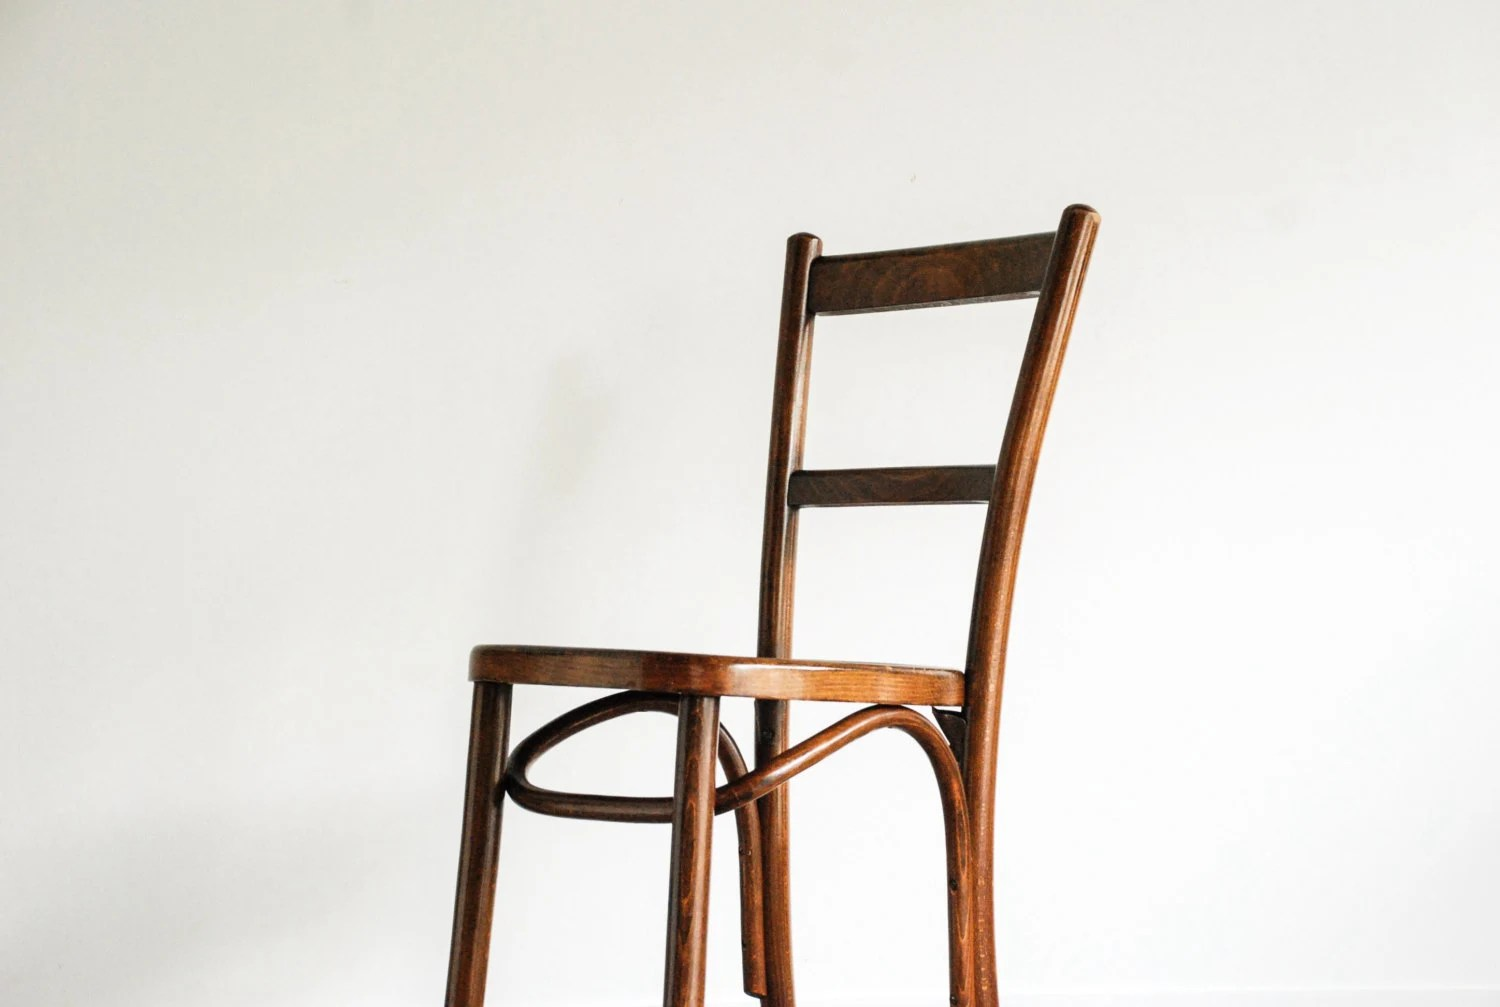 Cafe Chairs Bentwood Chair Thonet Chair Cafe Chair Bentwood Thonet